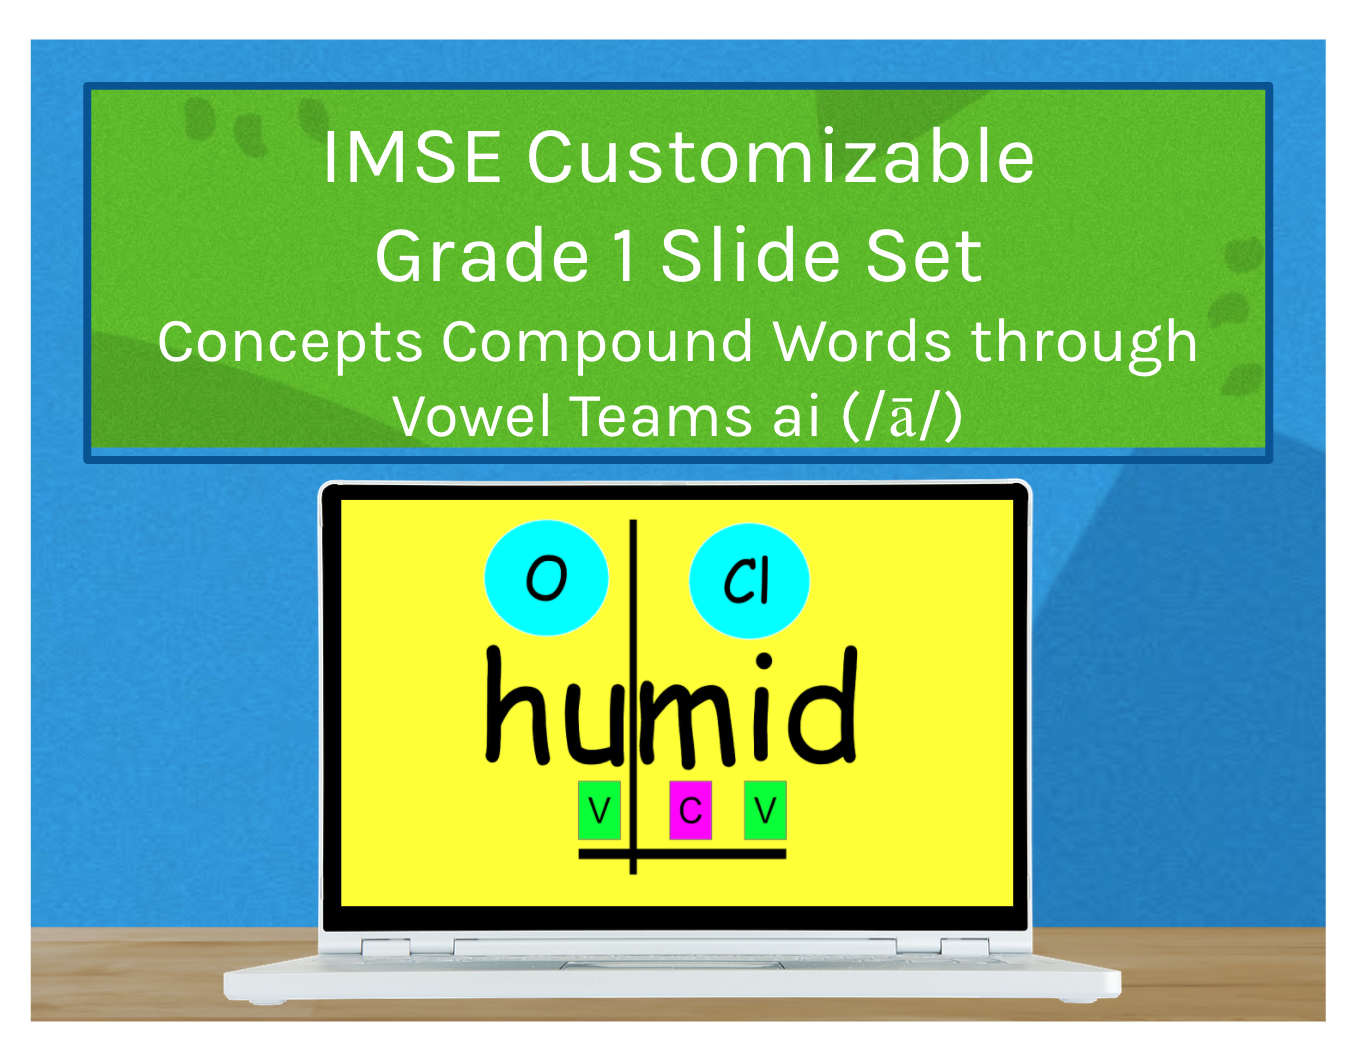 IMSE Customizable Grade 1 Slide Set